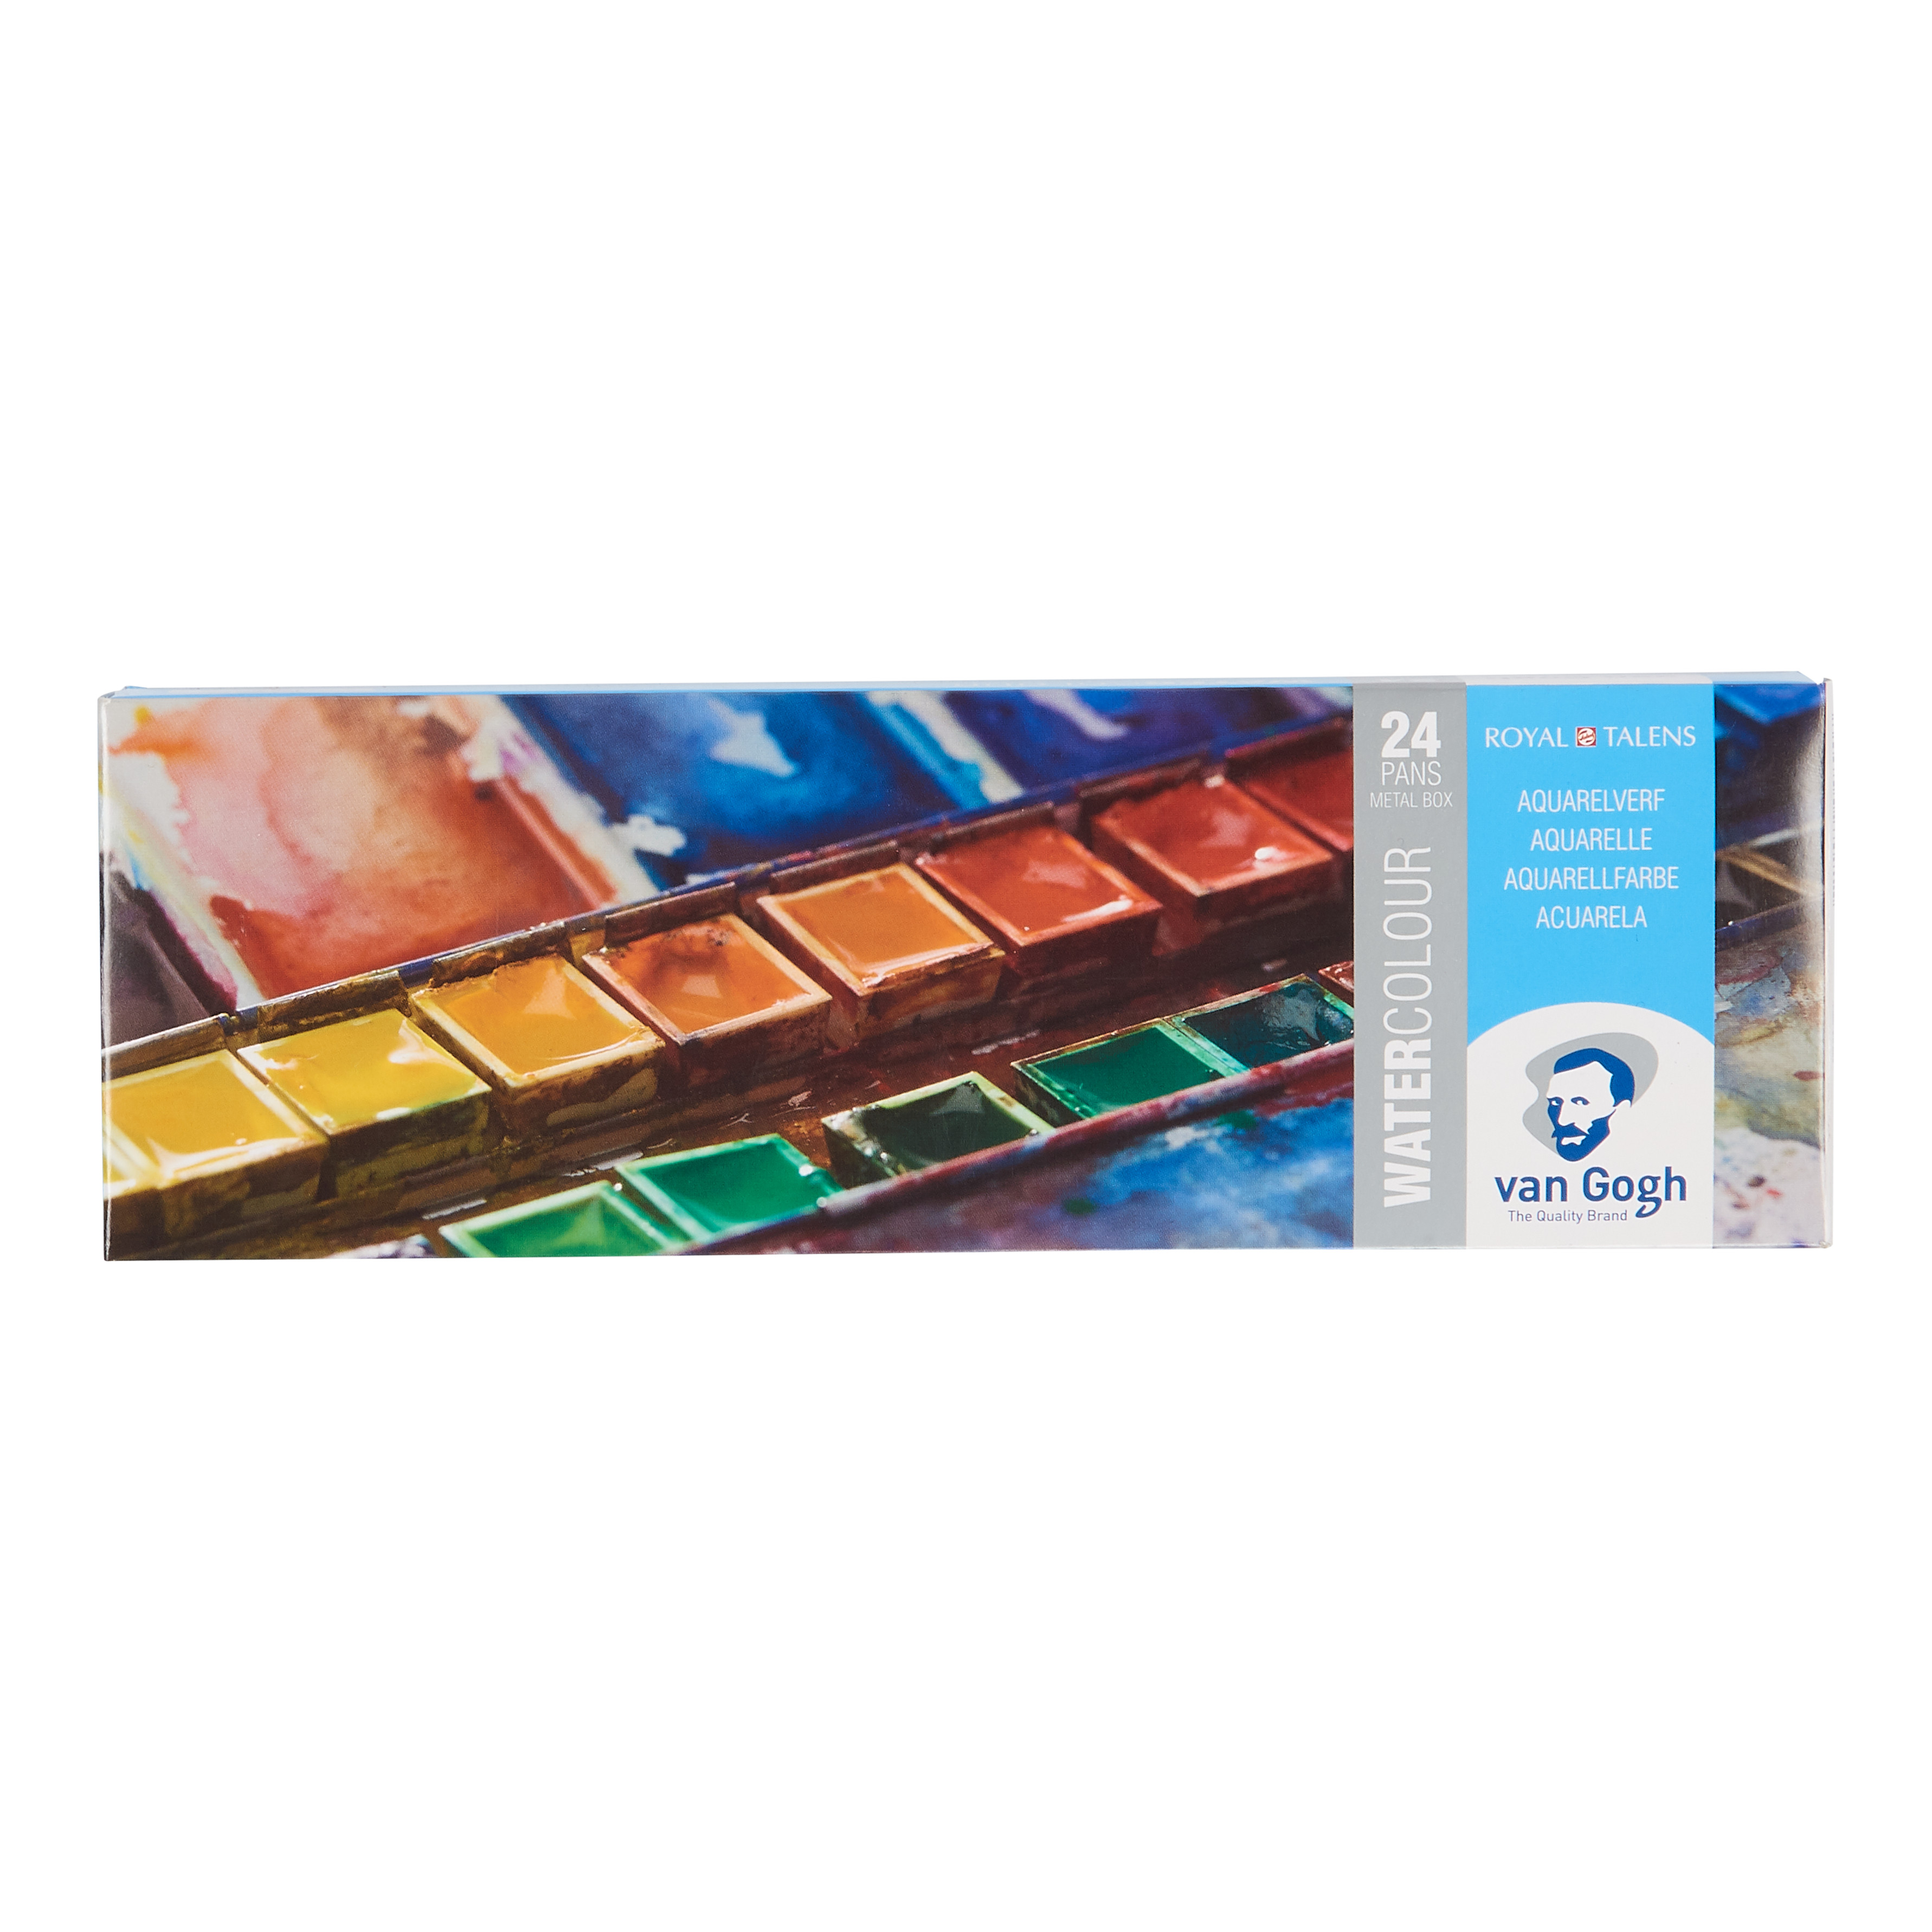 Van Gogh Water Colour Metal Case Set with 24 Colours in Half Pans